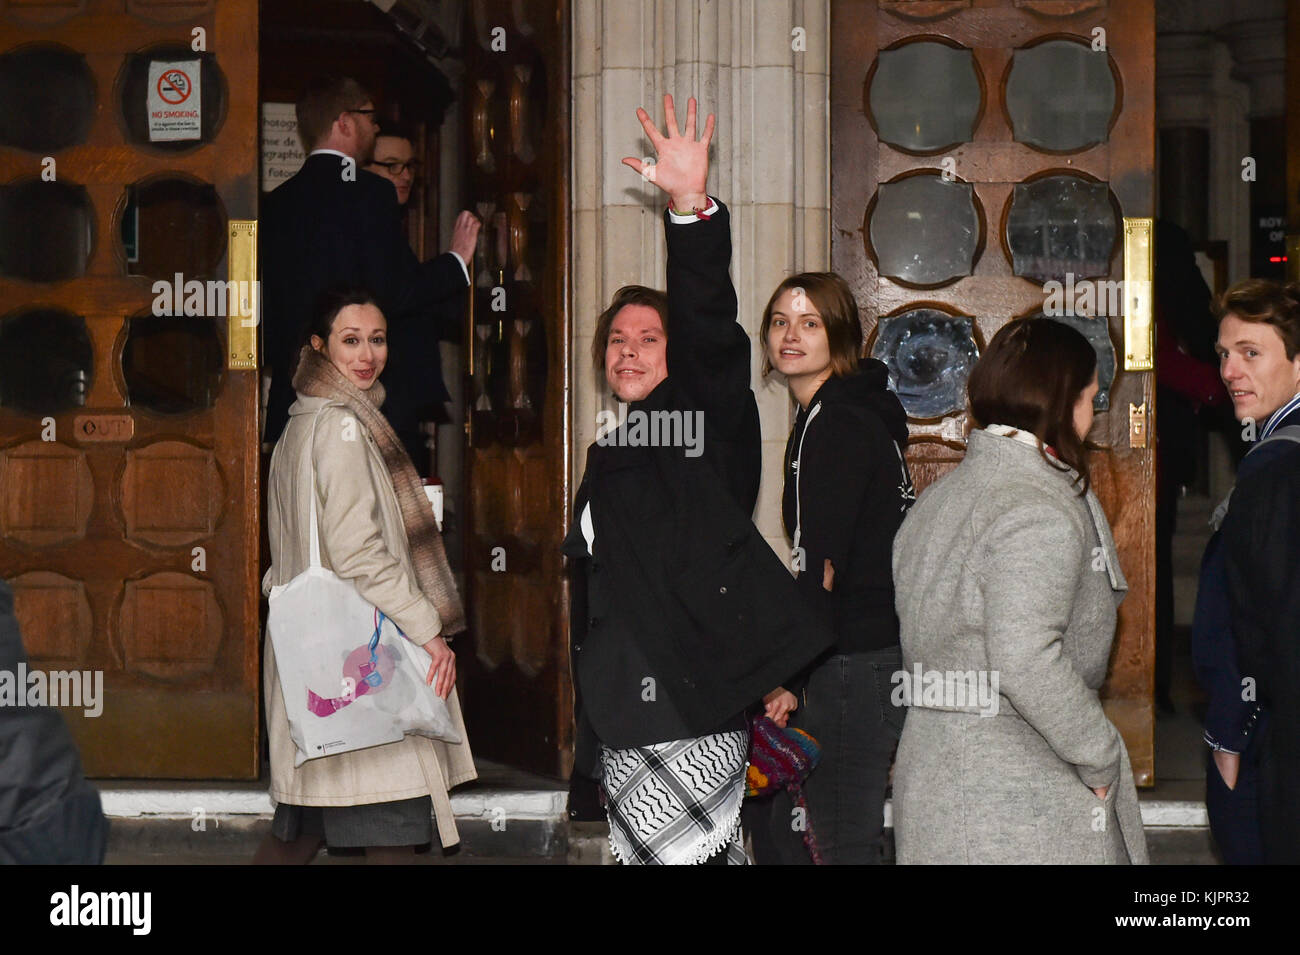 London, United Kingdom. 29 November 2017. Lauri Love and partner Sylvia Mann arrive at the Royal Courts of Justice - Stock Image